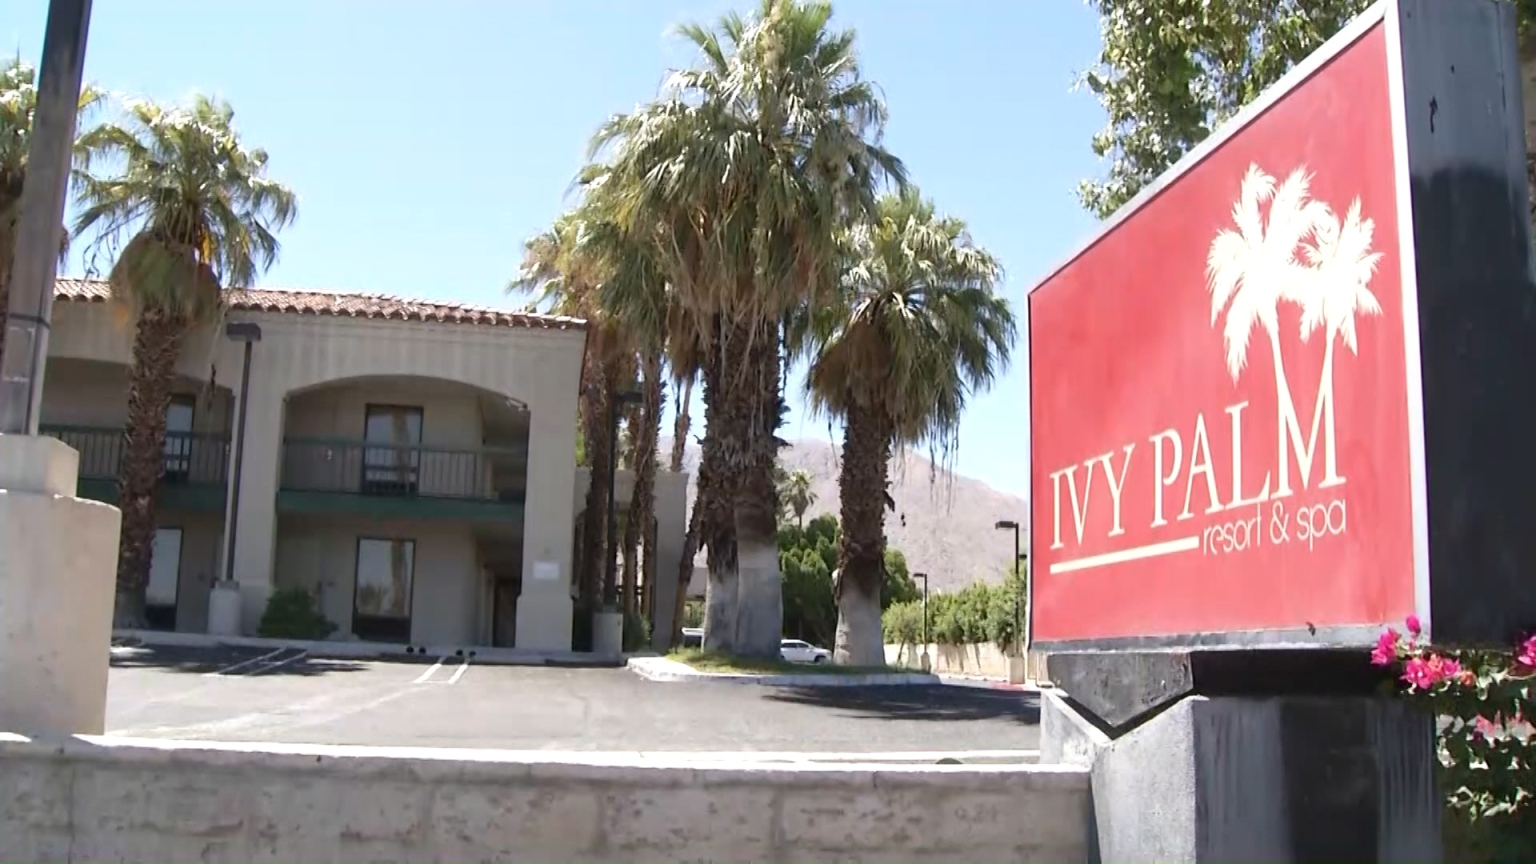 Funding for Ivy Palm Housing Effort Repurposed for Expansion of Mountain View Estates